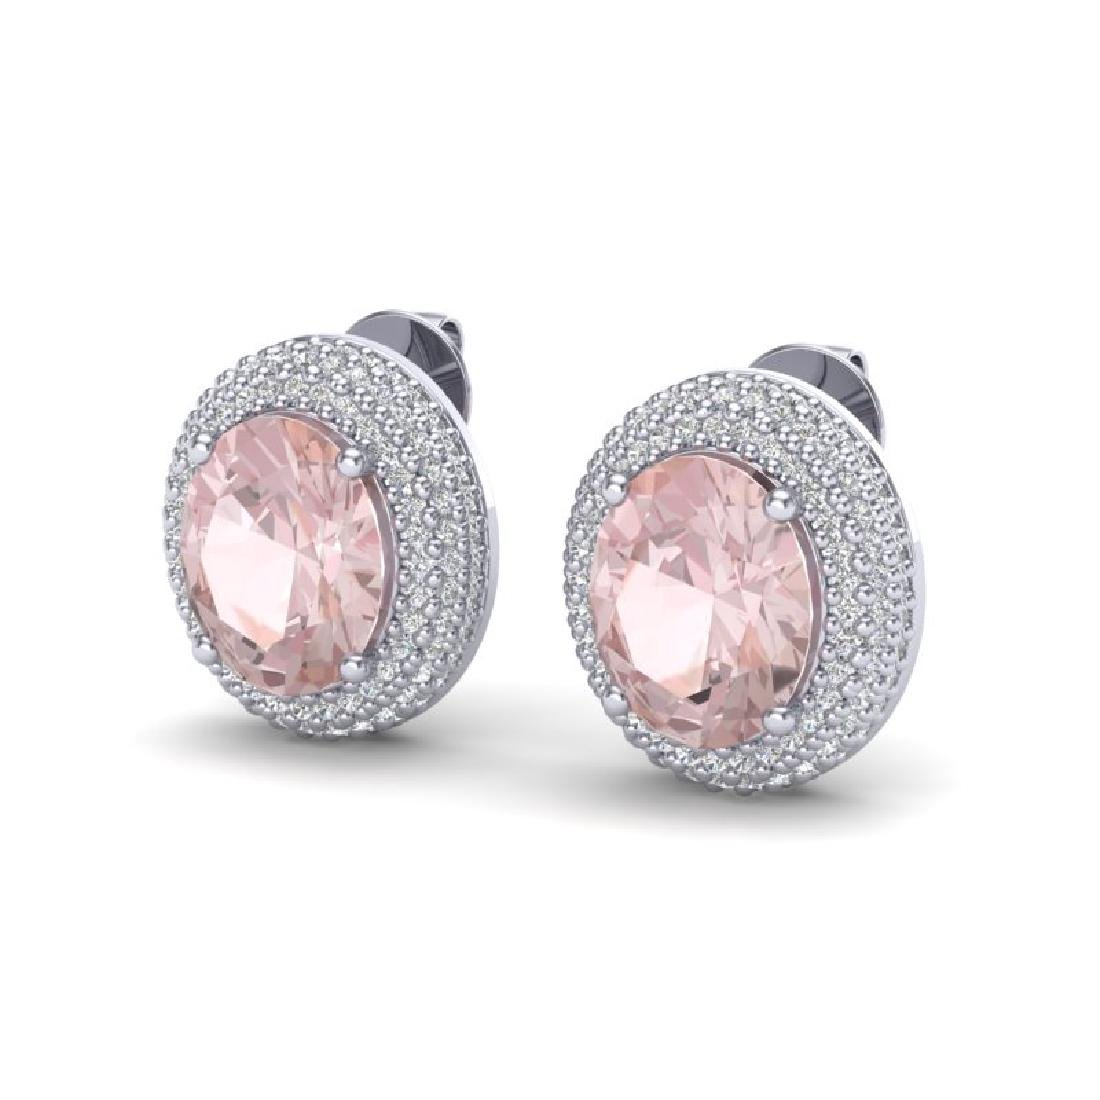 9 CTW Morganite & Micro Pave VS/SI Diamond Earrings 18K - 2